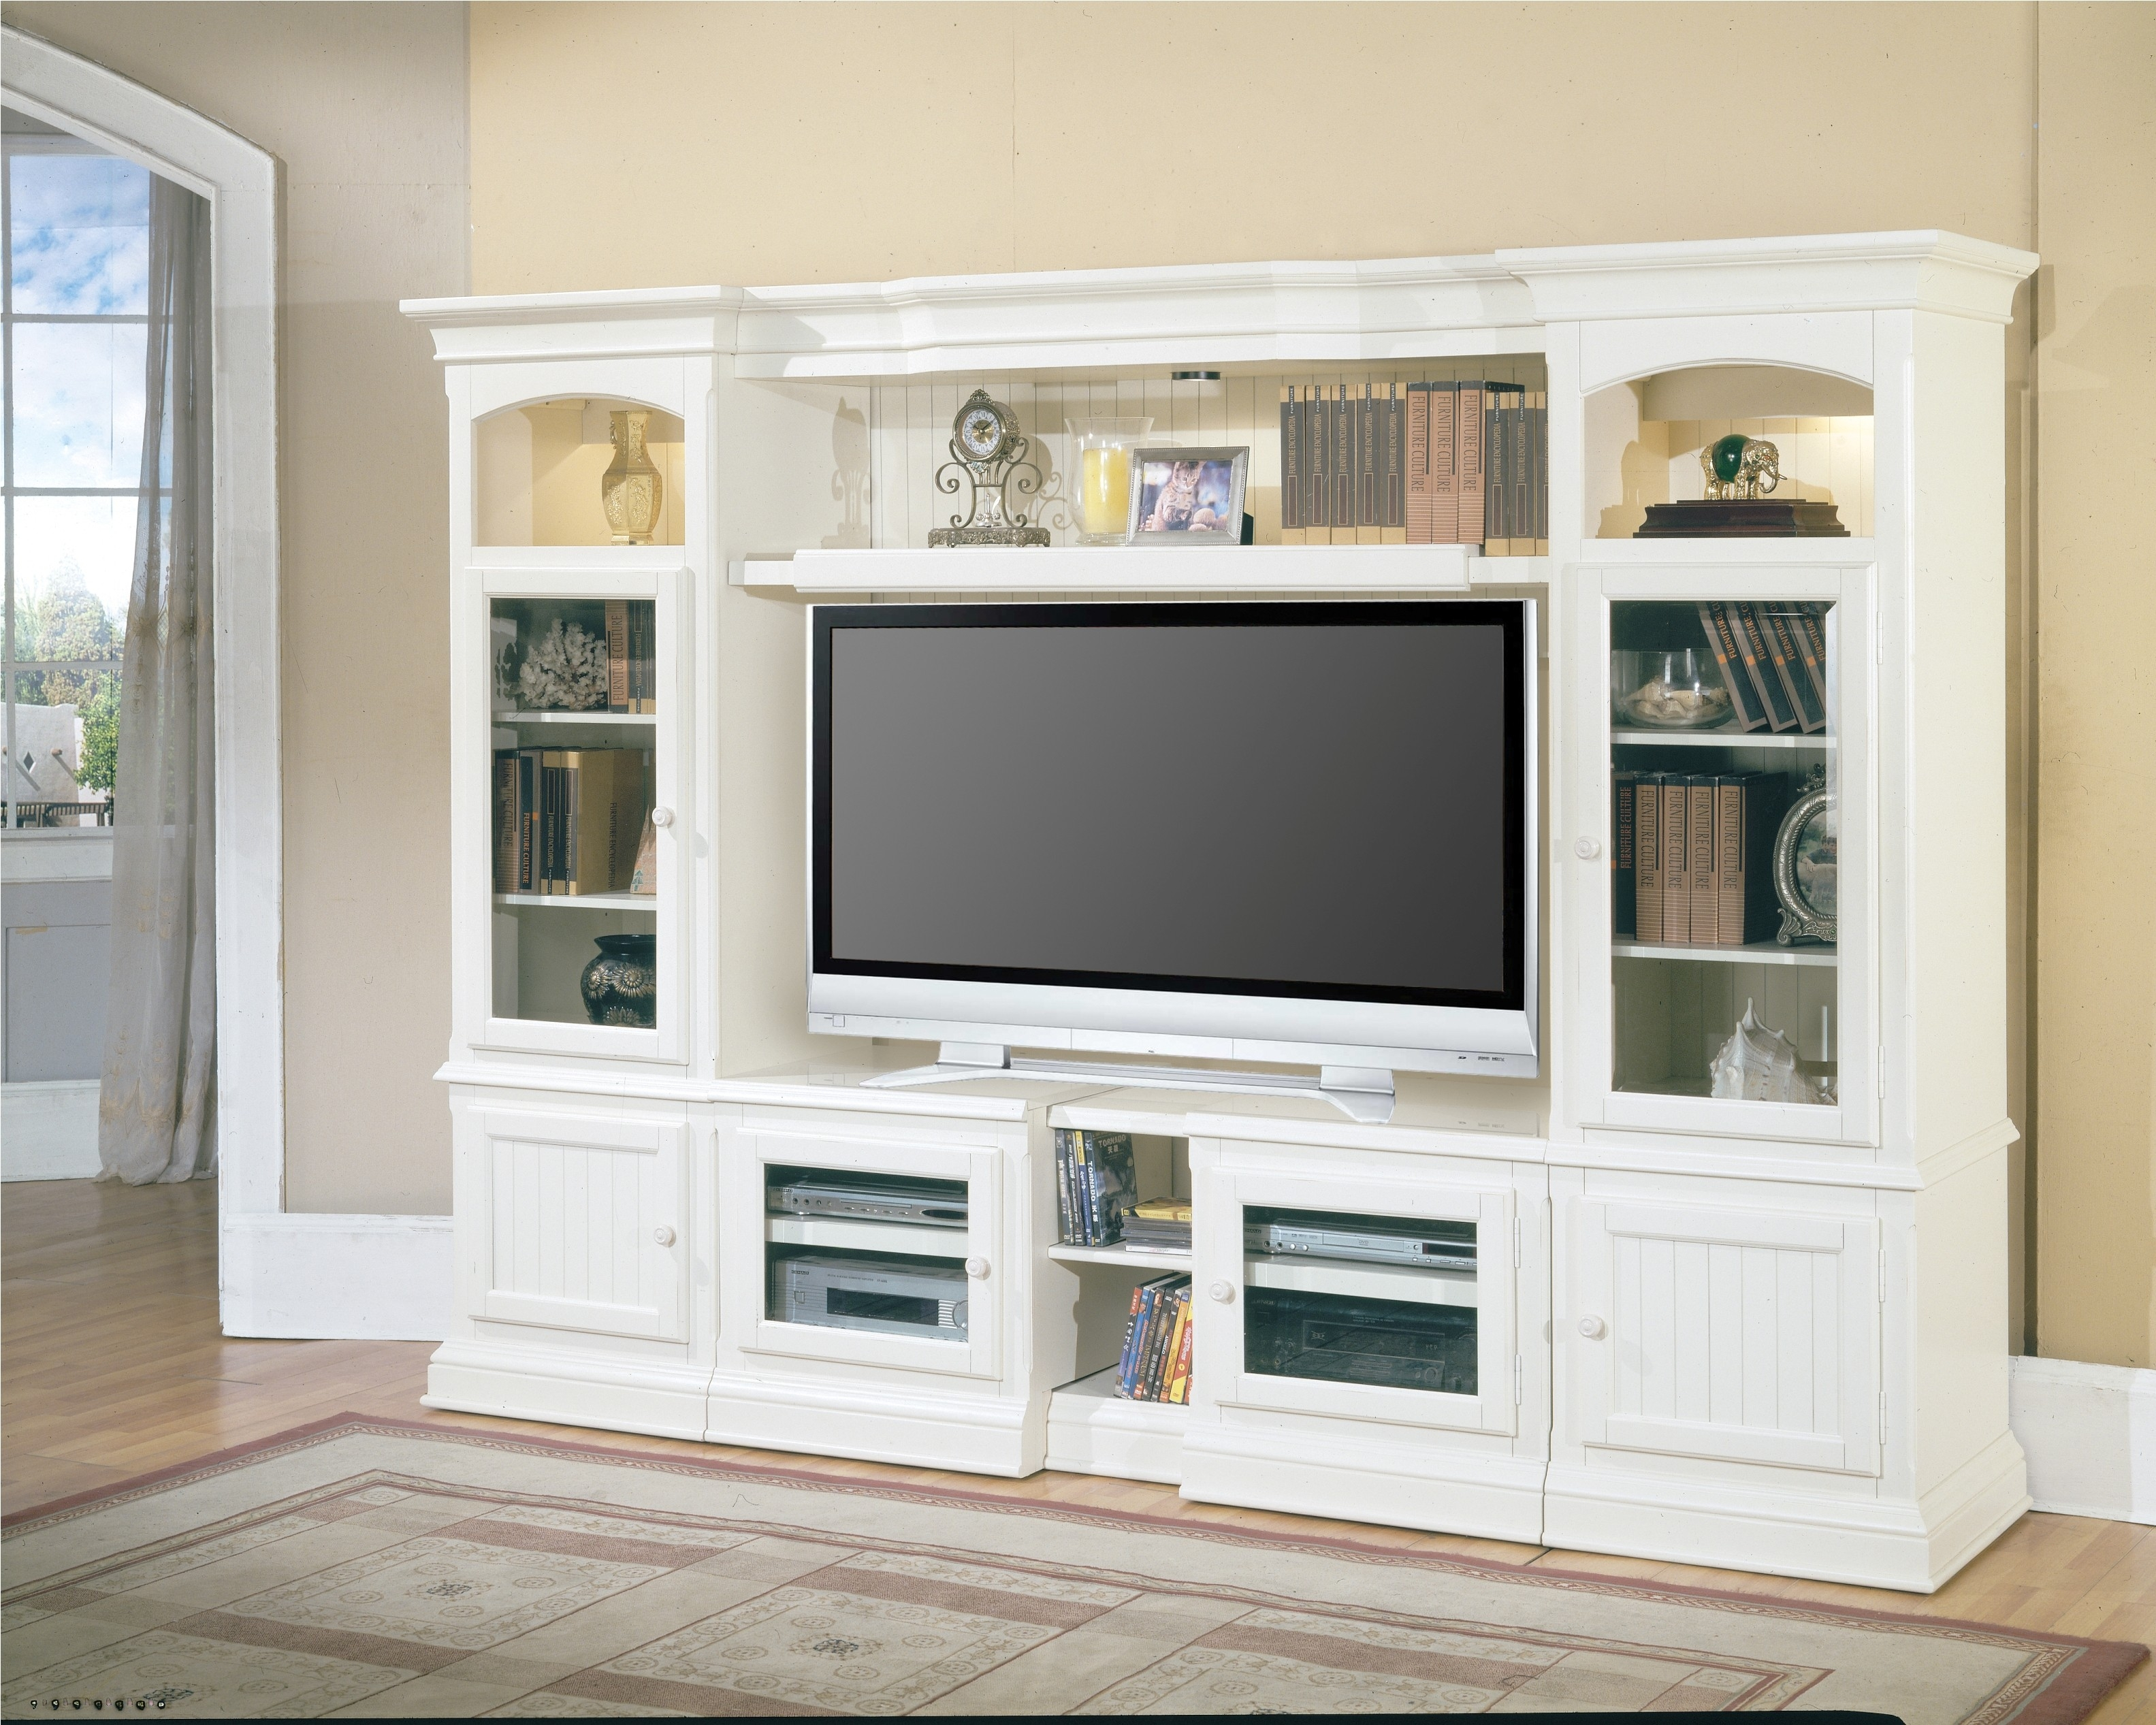 Furniture Superb Tv Cabinet Bookcase Furniture Interior Rustic Intended For Tv Bookcase (View 13 of 15)